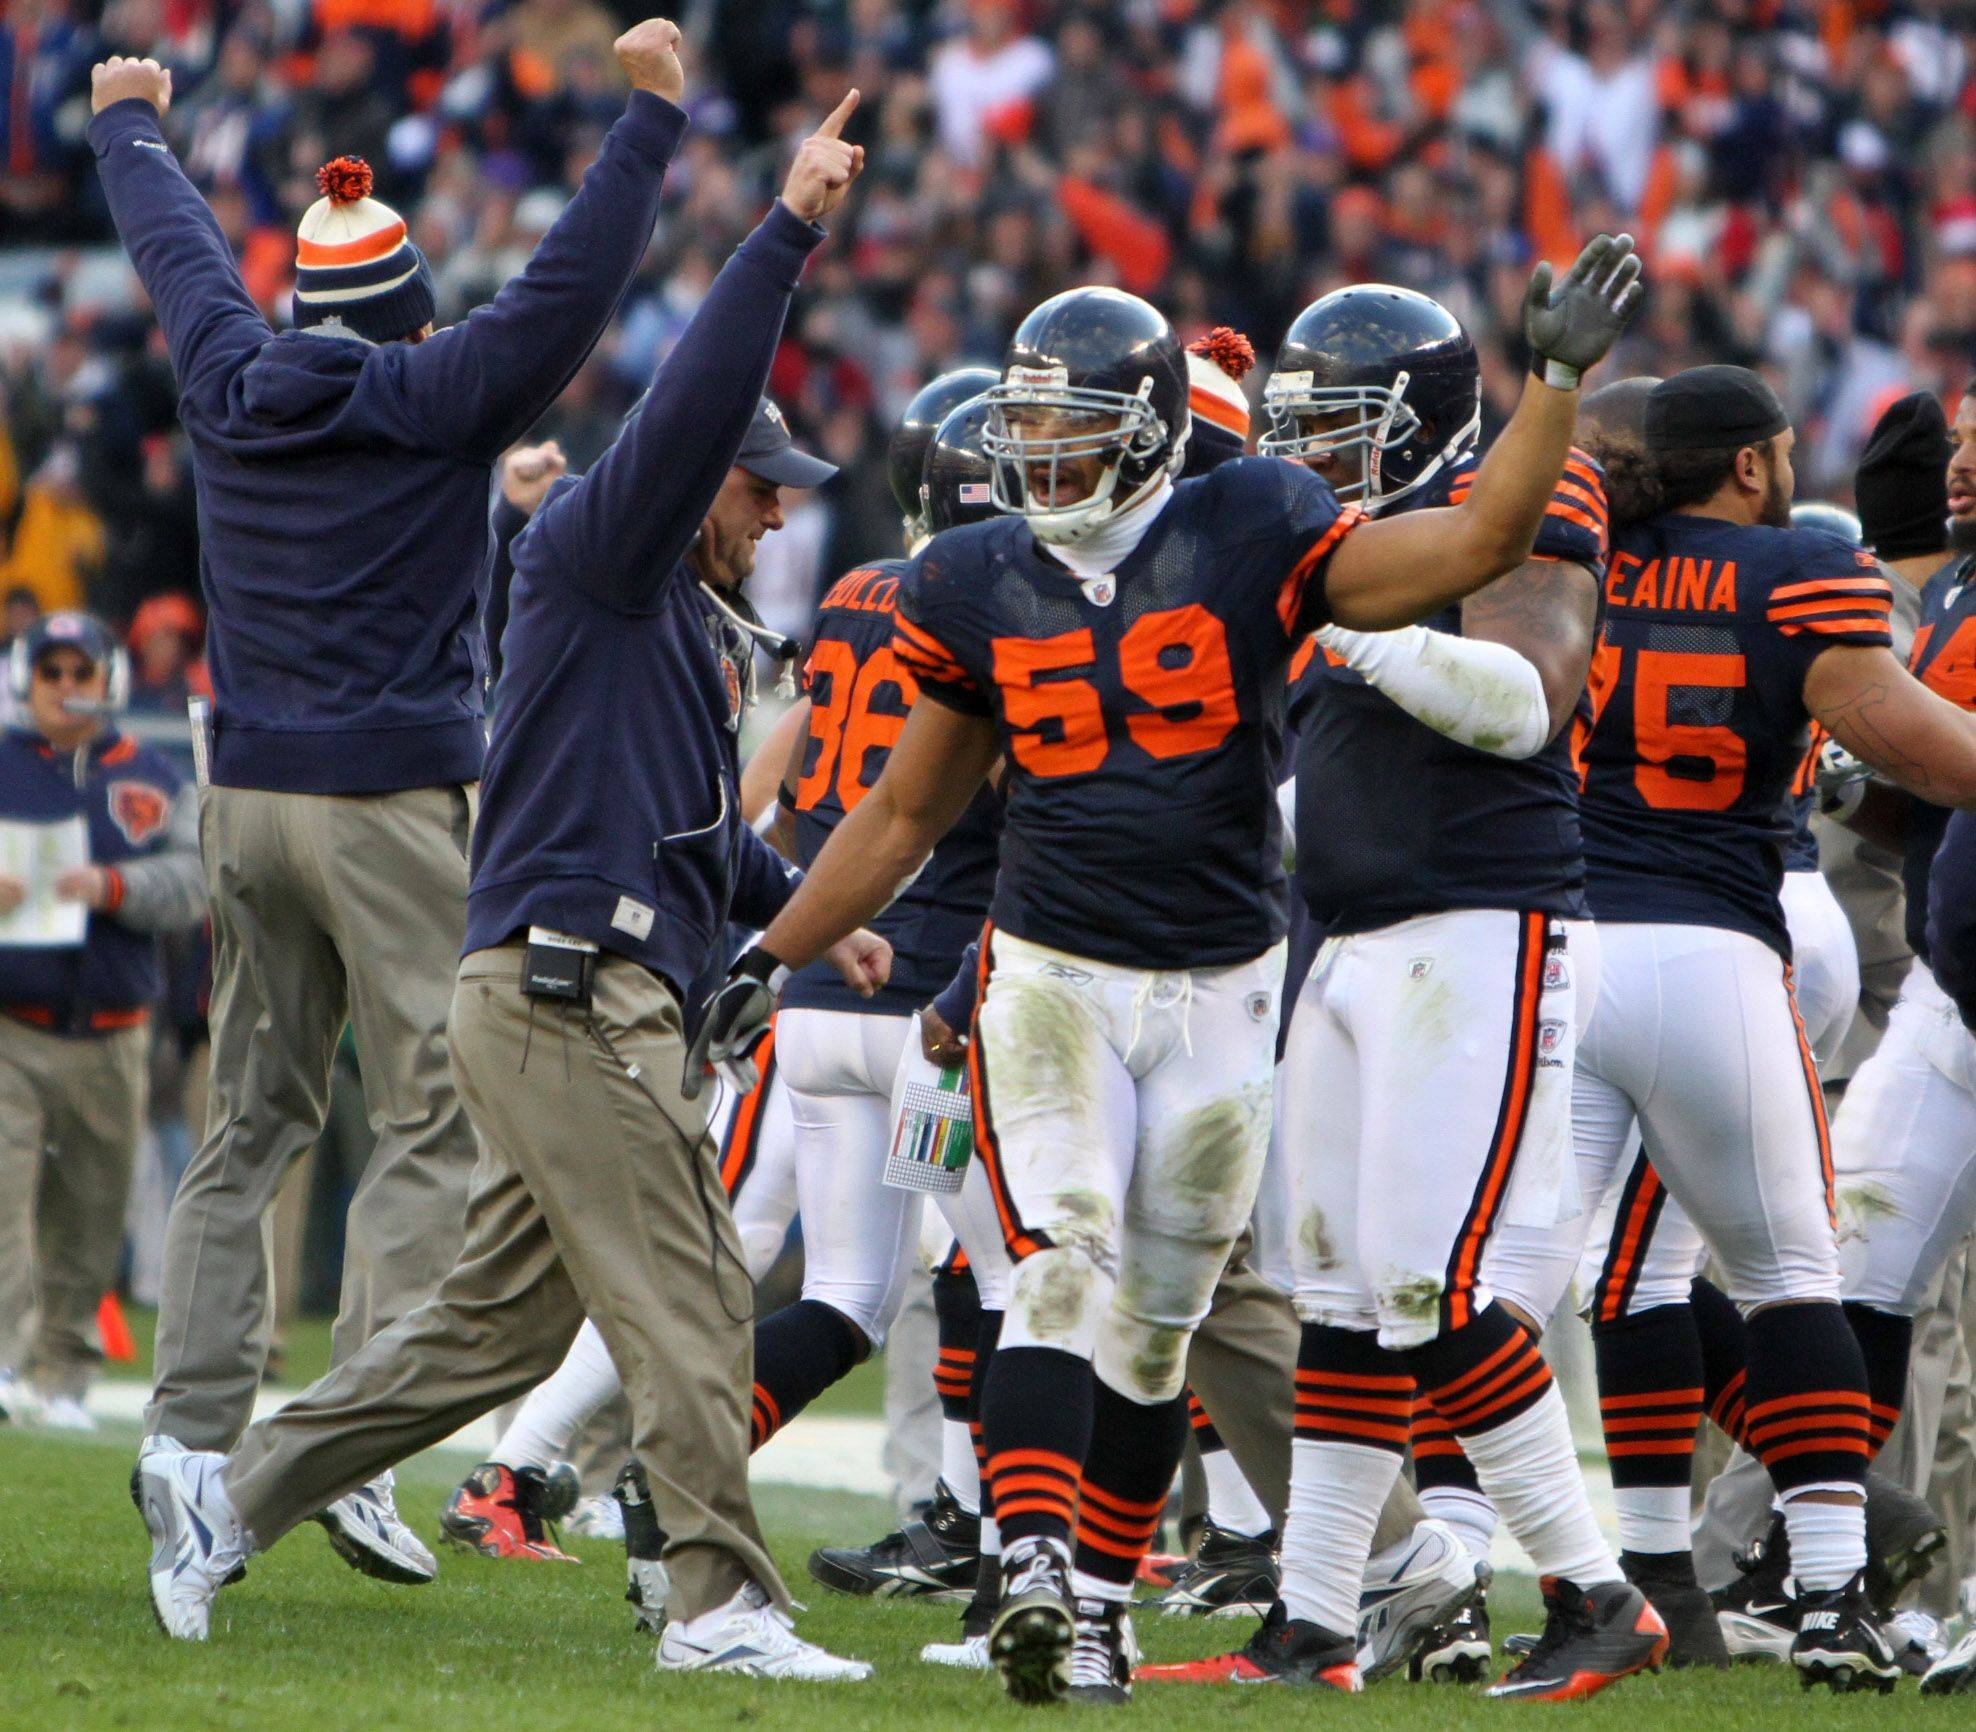 Chicago Bears celebrate recovering a fumble by Lance Briggs against Minnesota Vikings in the second half.